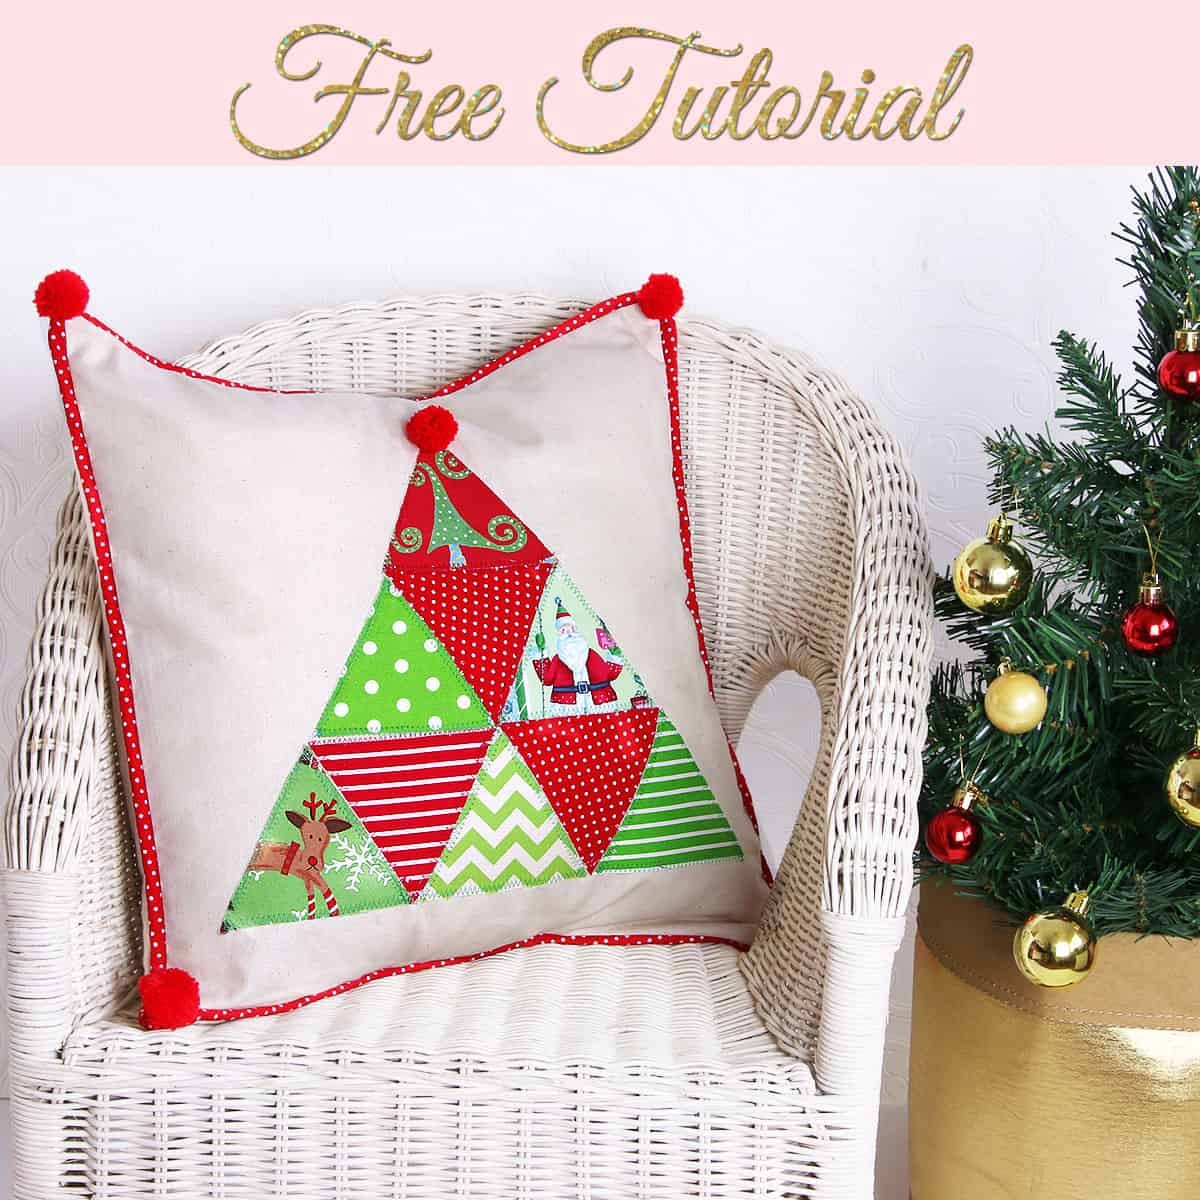 Christmas Tree Facebook Cover Photo: Pretty Cover With Tree Applique